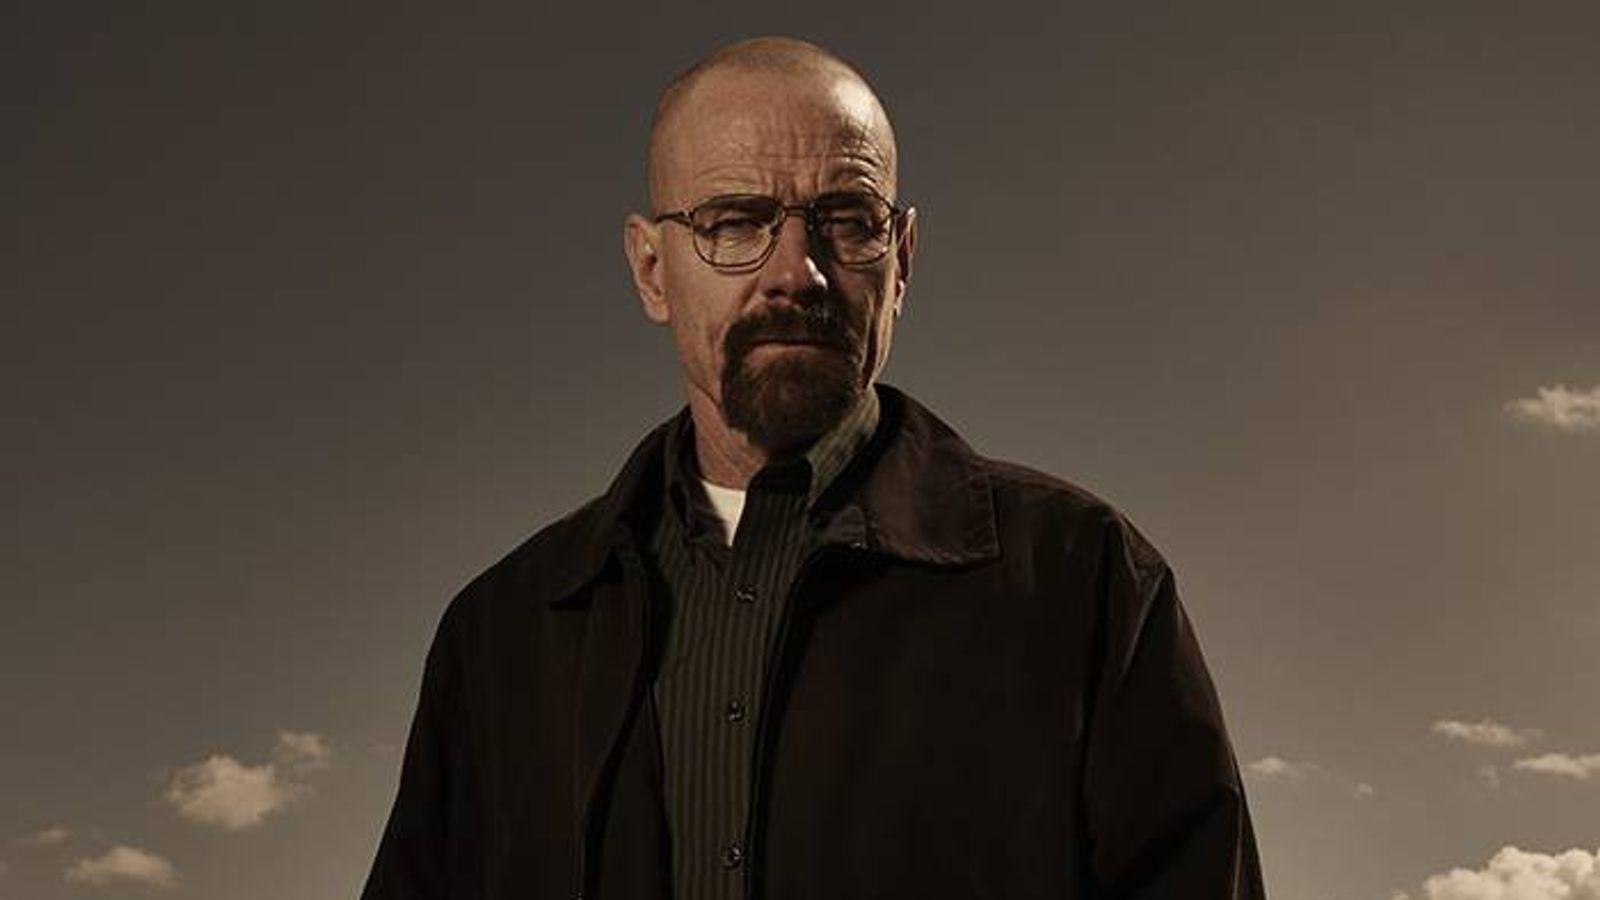 Breaking Bad: Bryan Cranston confirms film based on hit show is in works